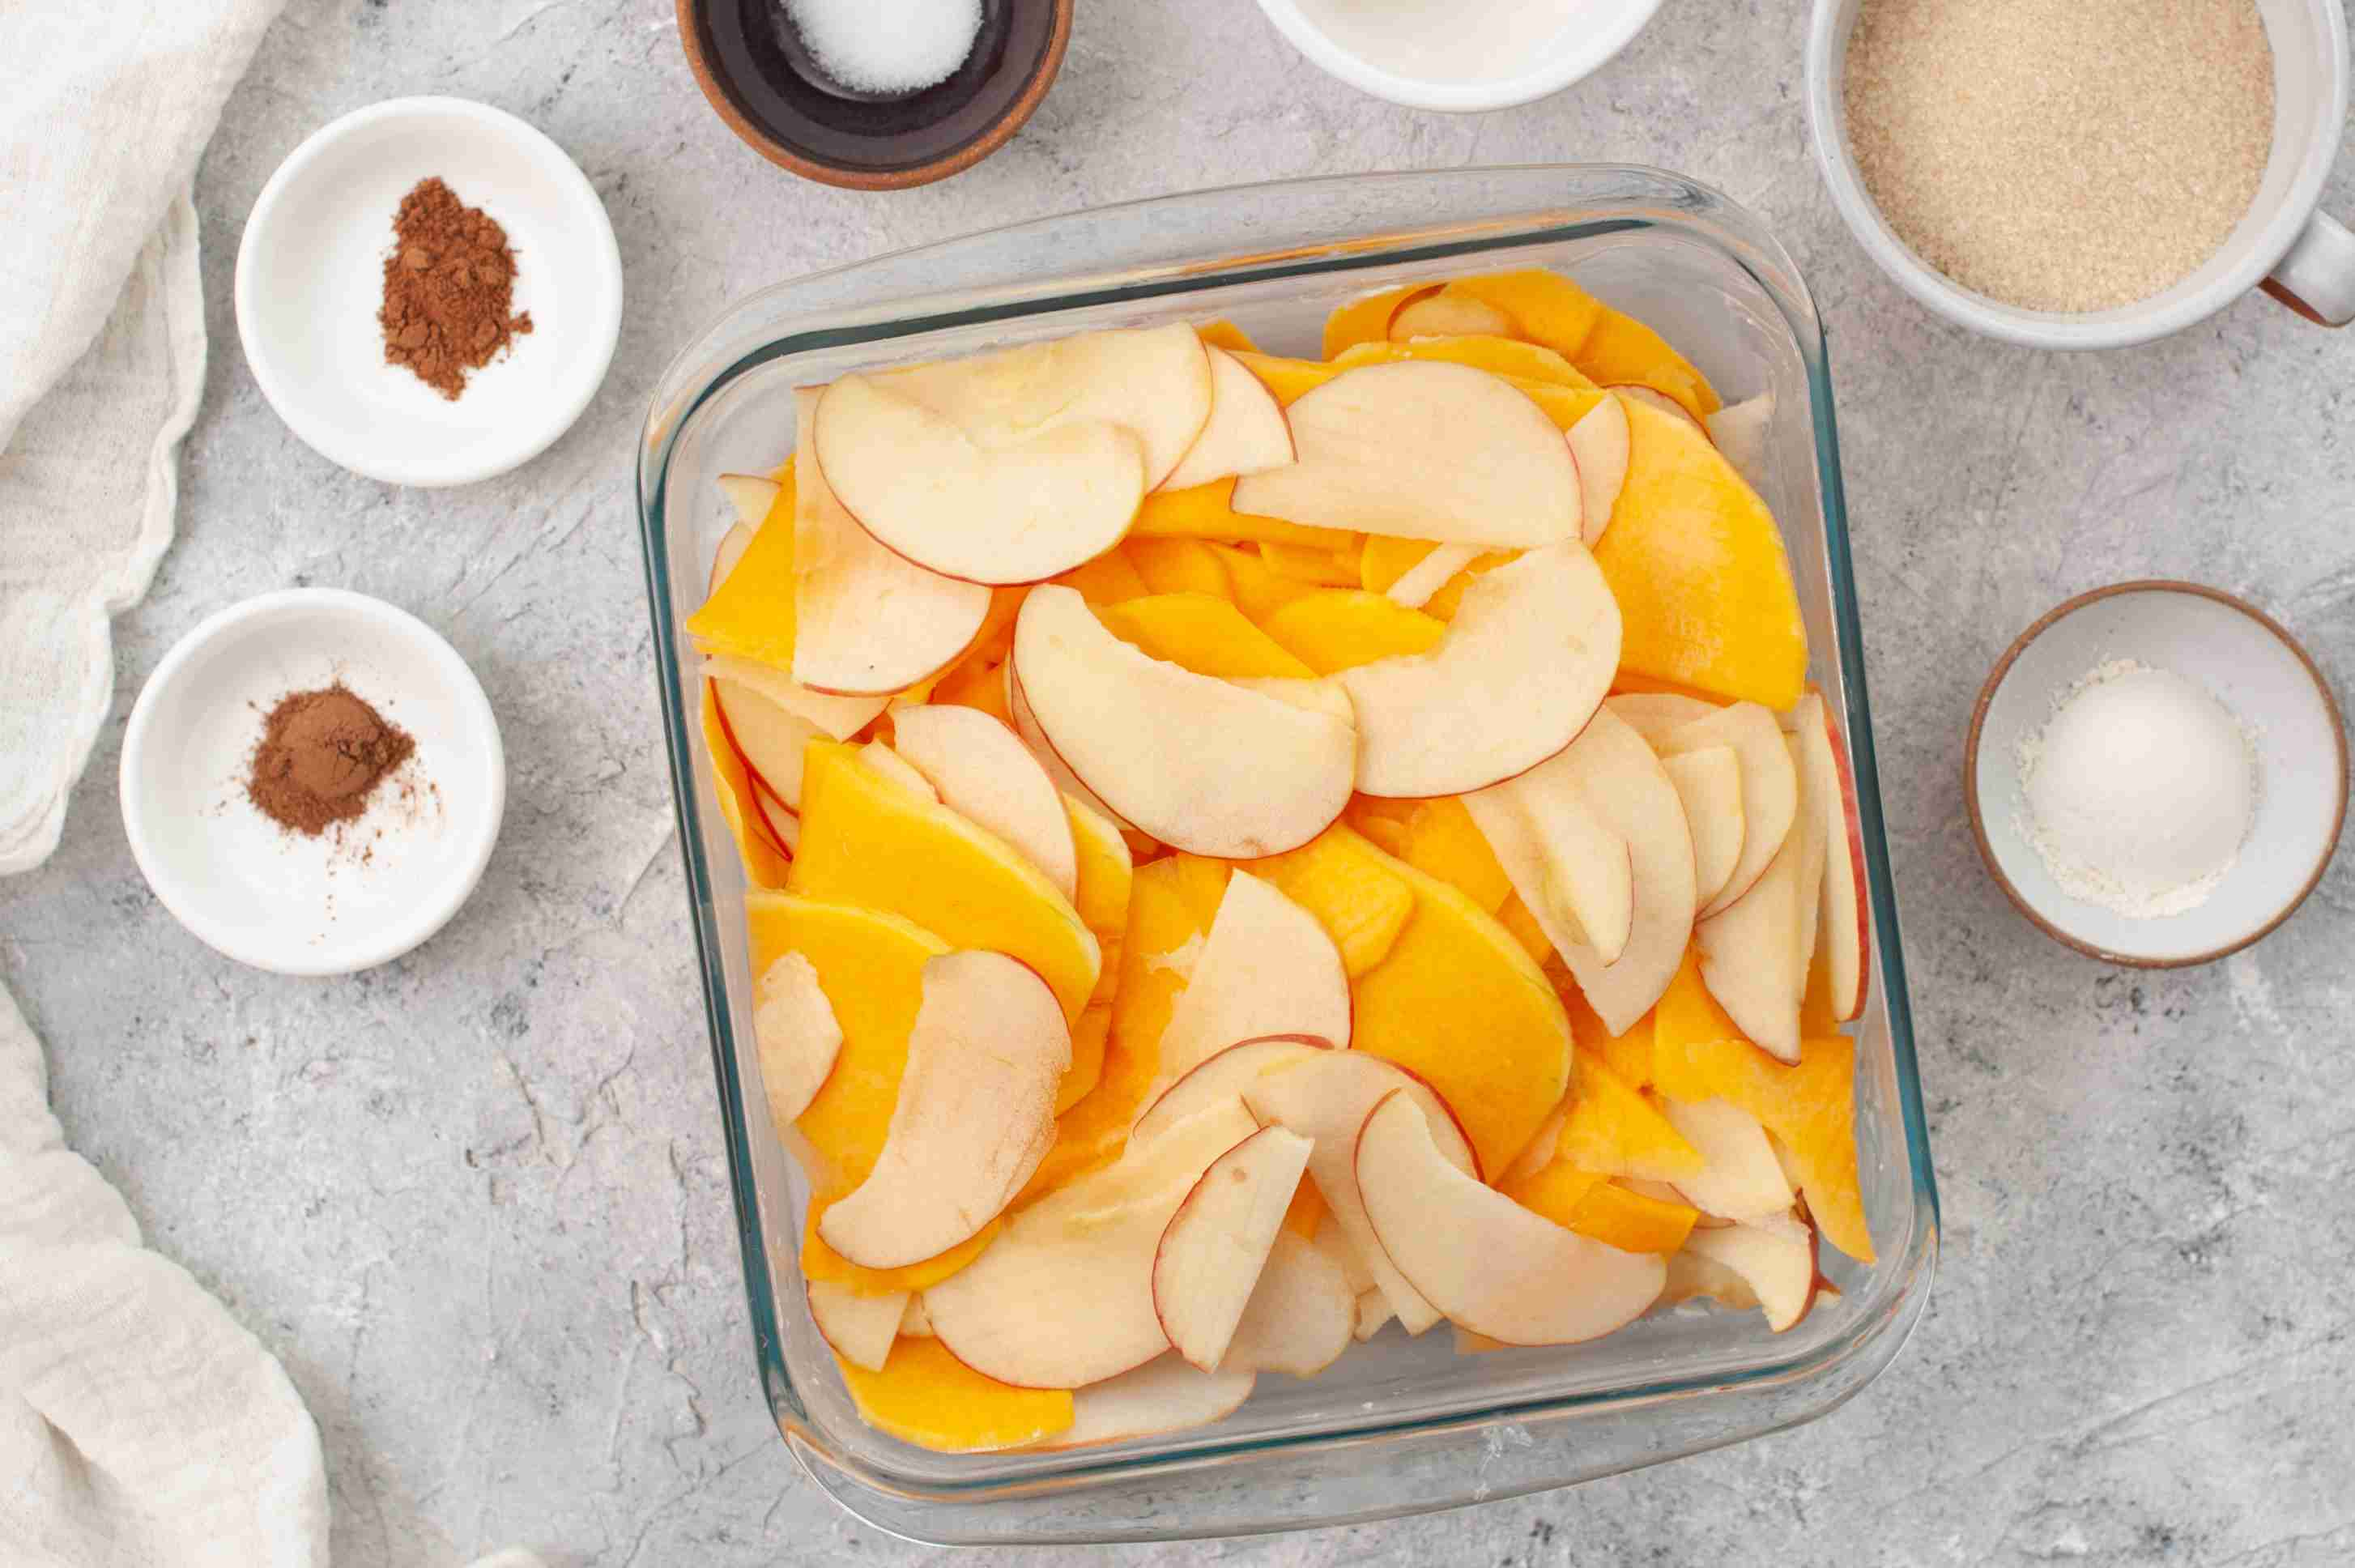 Slice the apples and squash